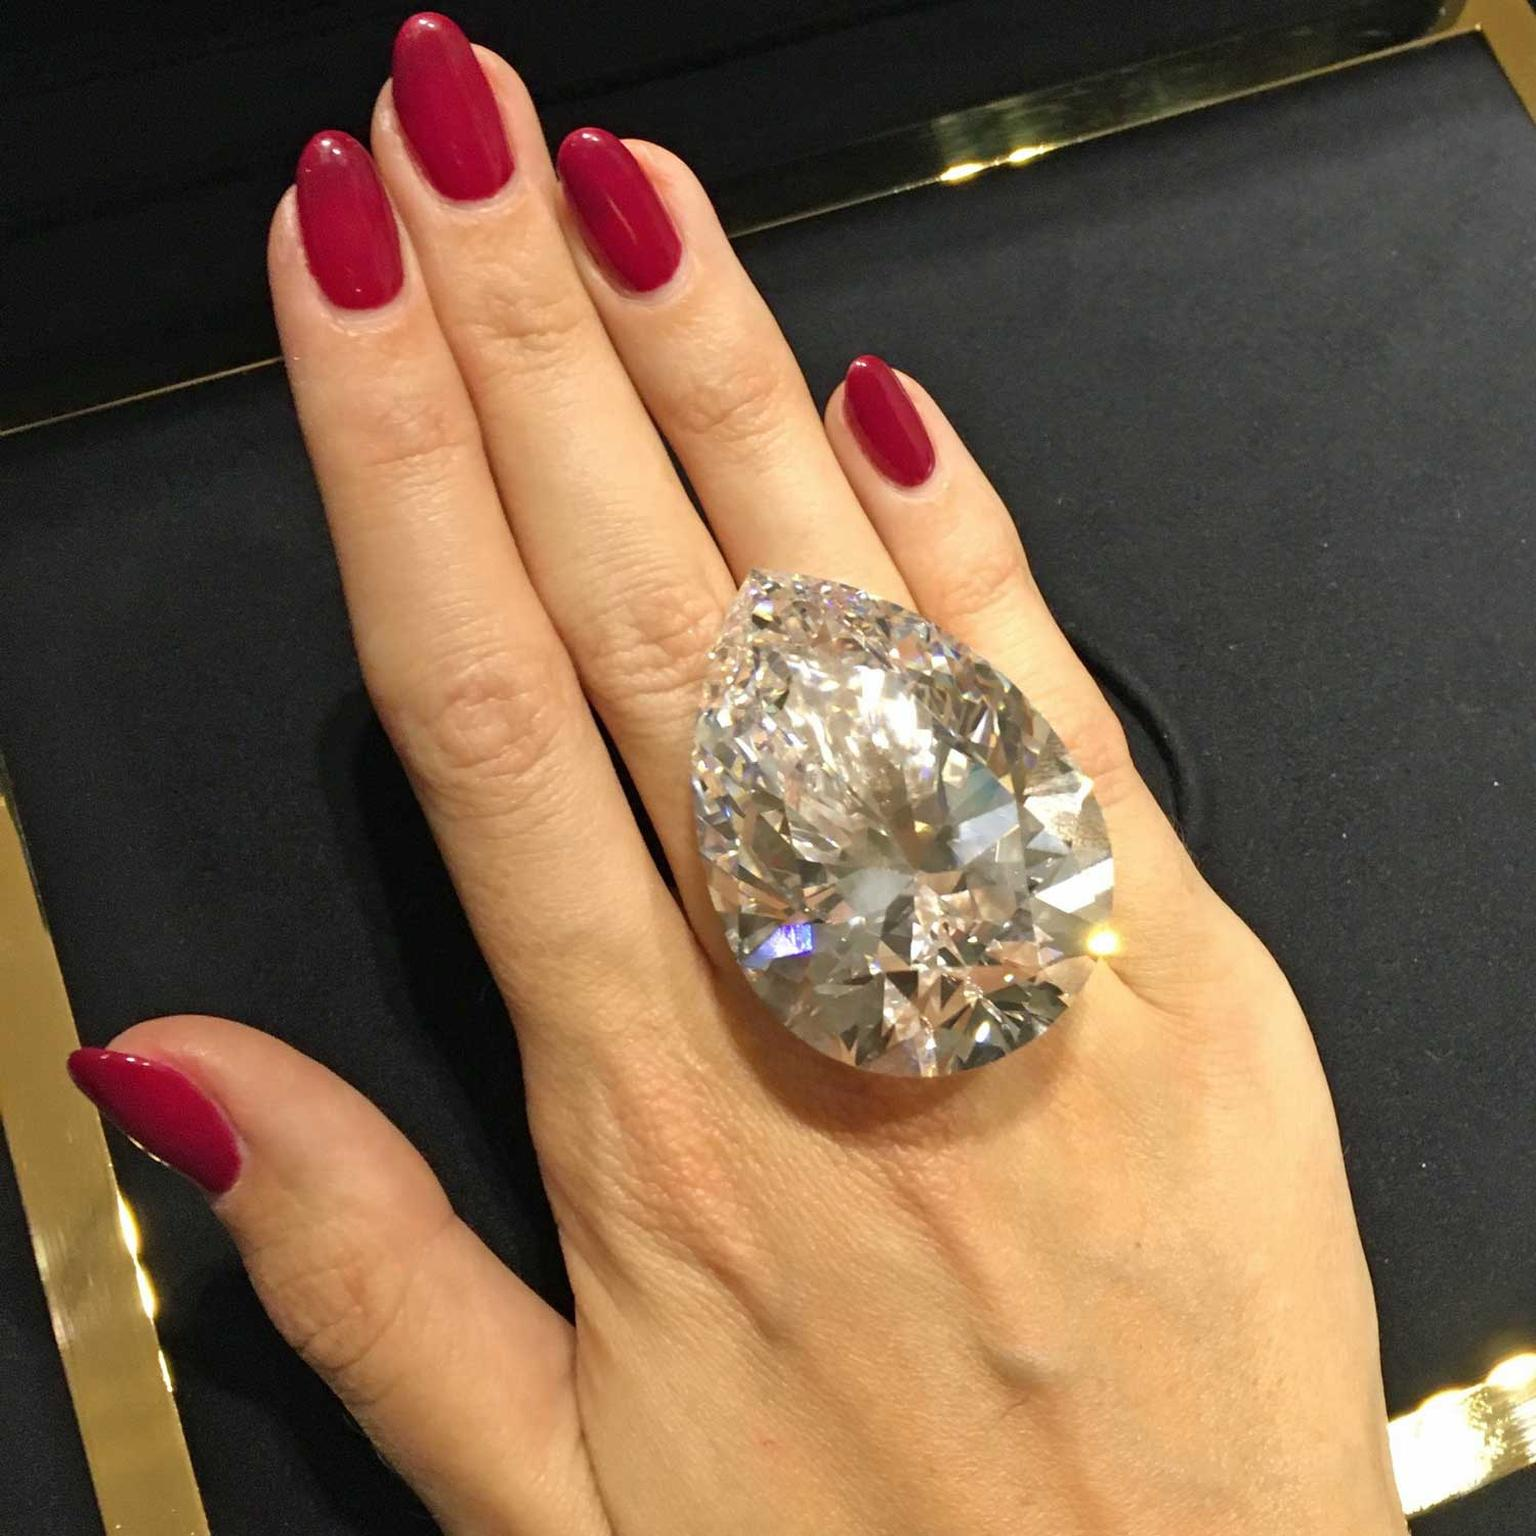 The Harrods 228.31-carat diamond, which is a G colour with VS1 clarity